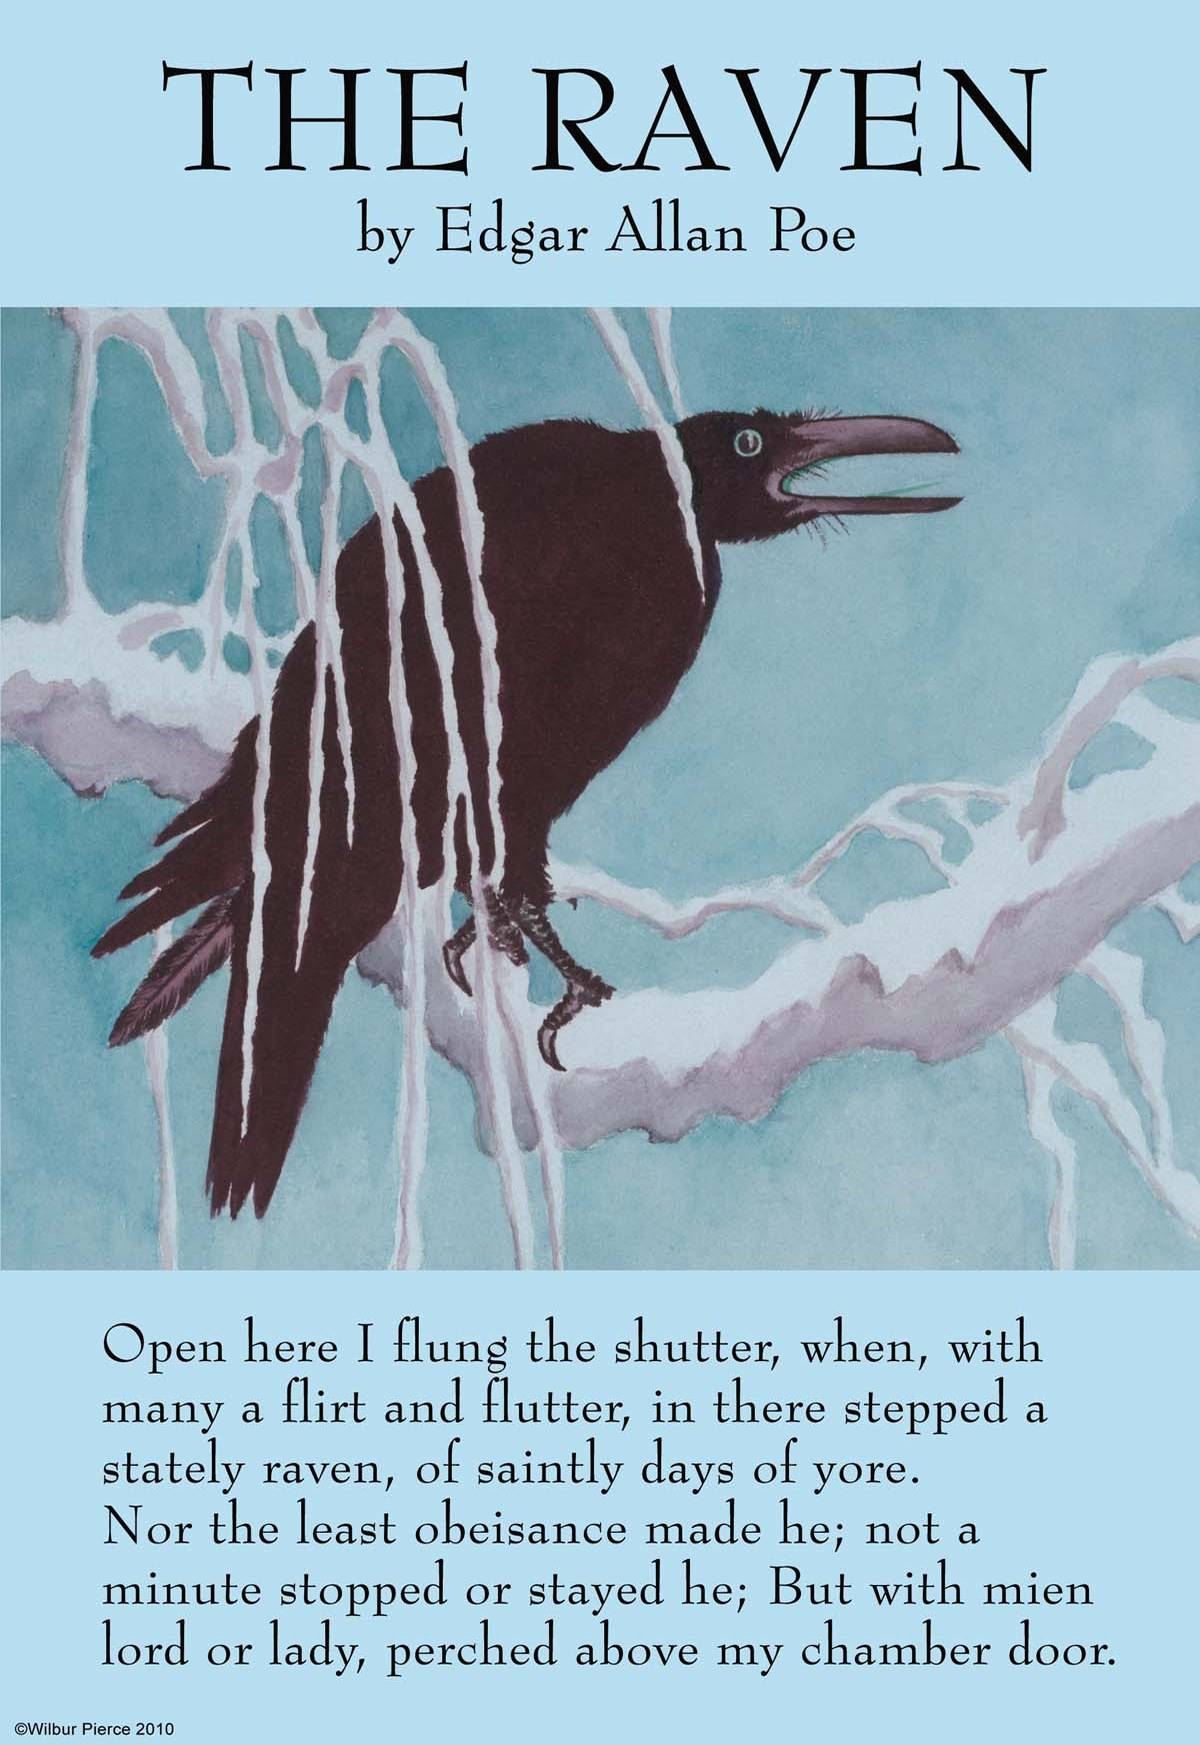 an analysis of edgar allan poes the raven Start studying edgar allan poe poem the raven learn vocabulary, terms, and more with flashcards, games, and other study tools.